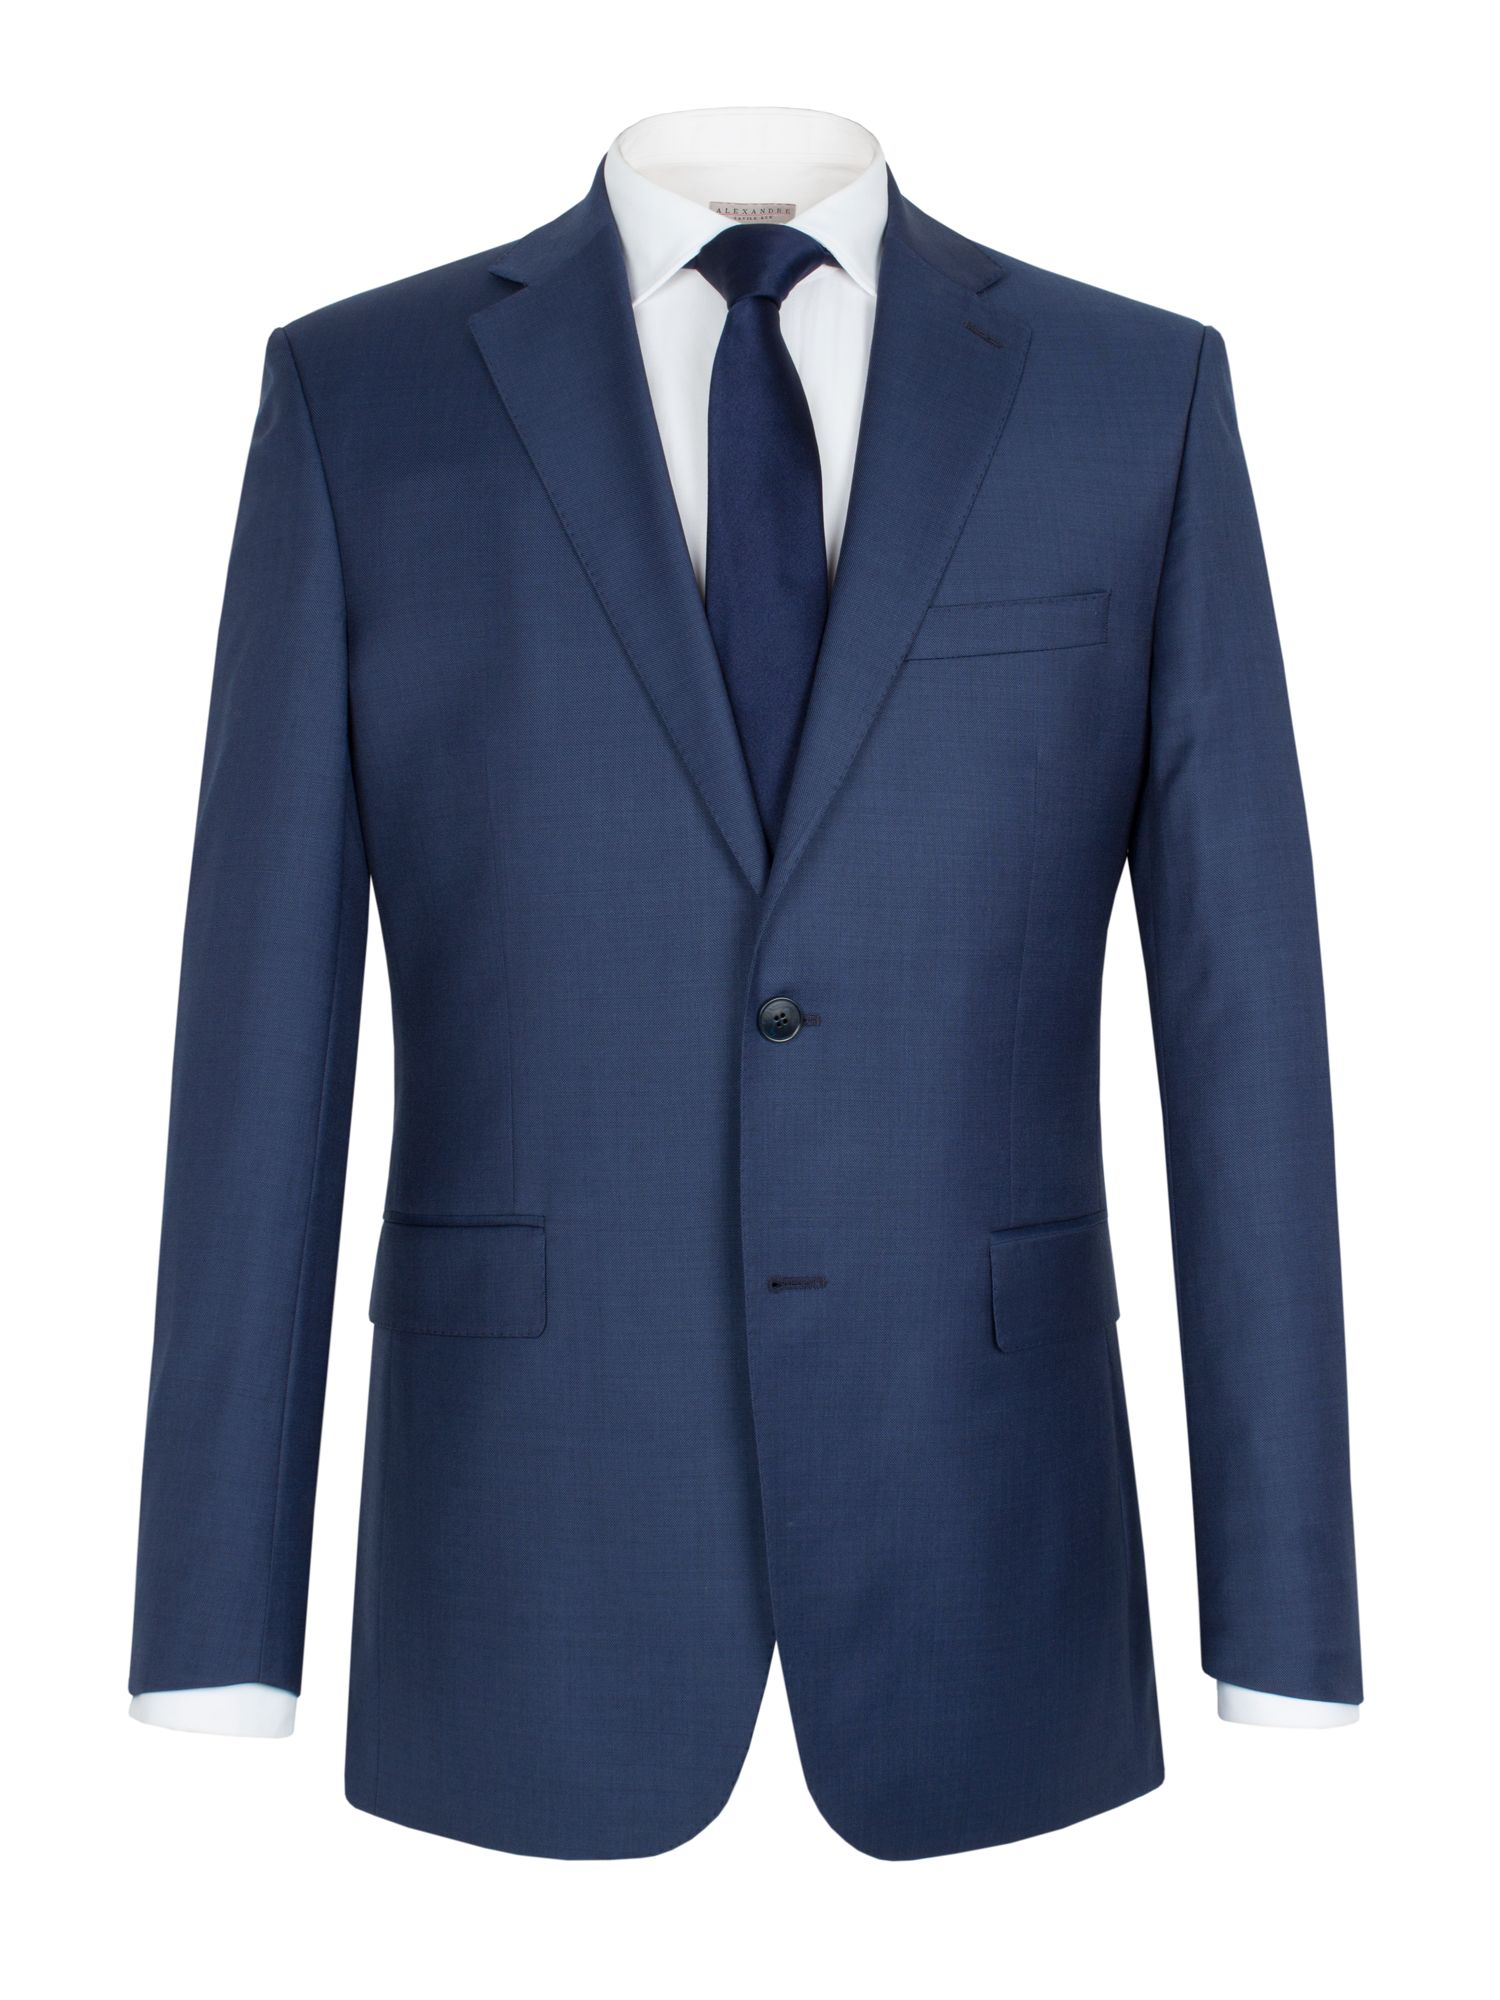 Sharkskin notch single breasted suit jacket